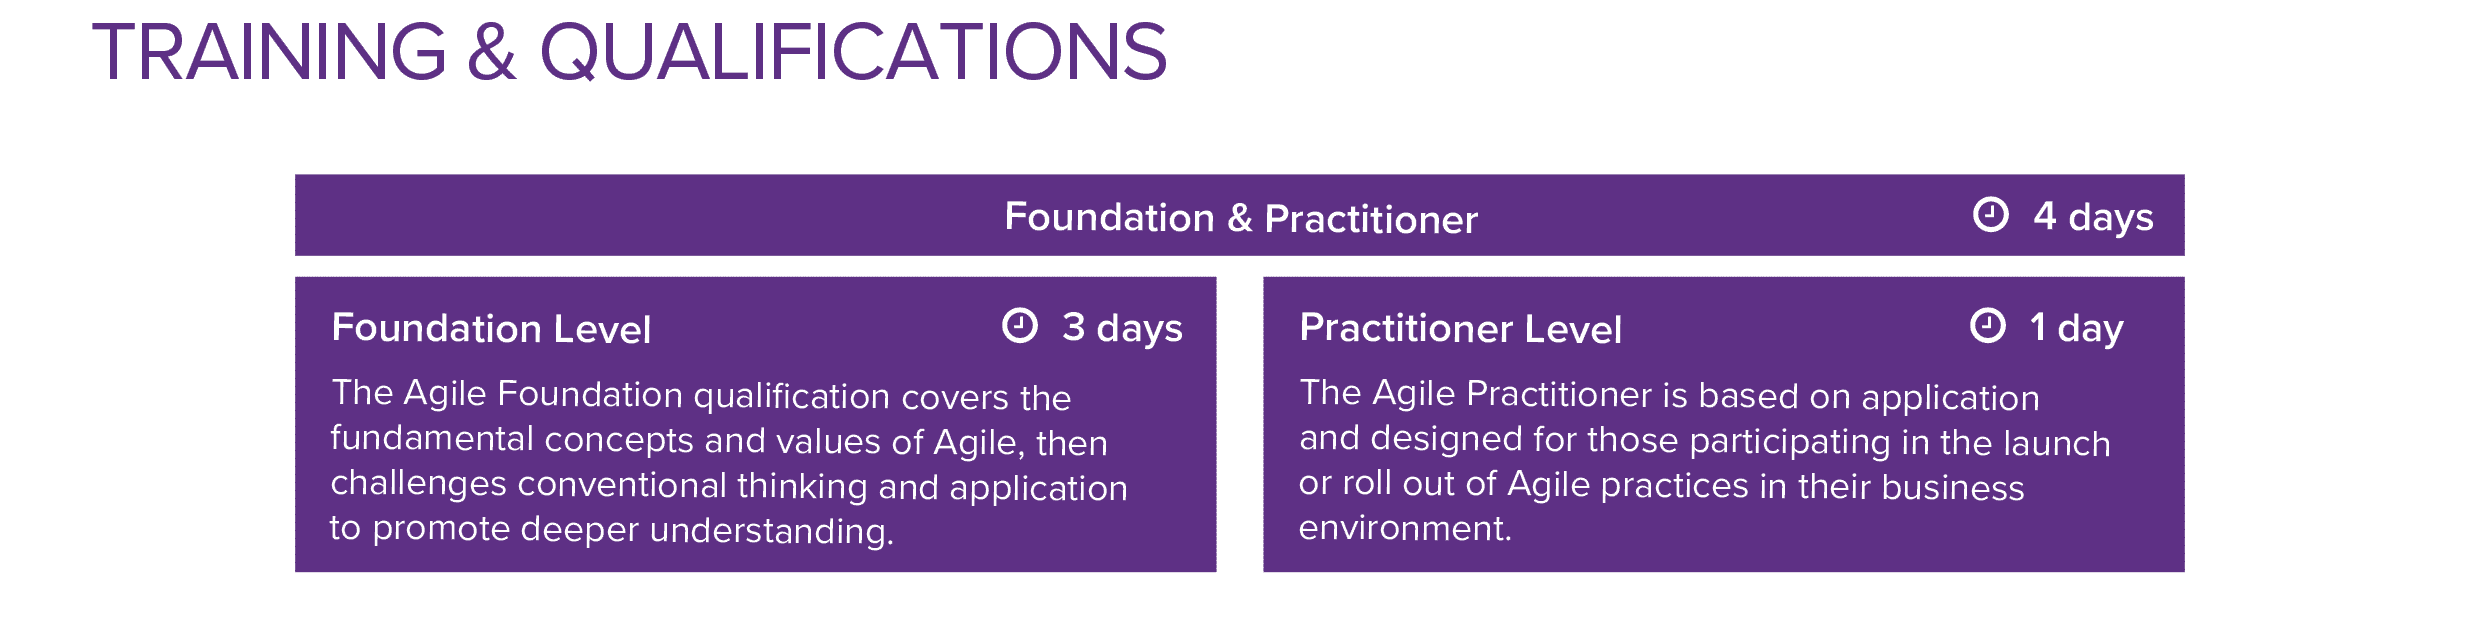 AgilePM Training and Qualifications